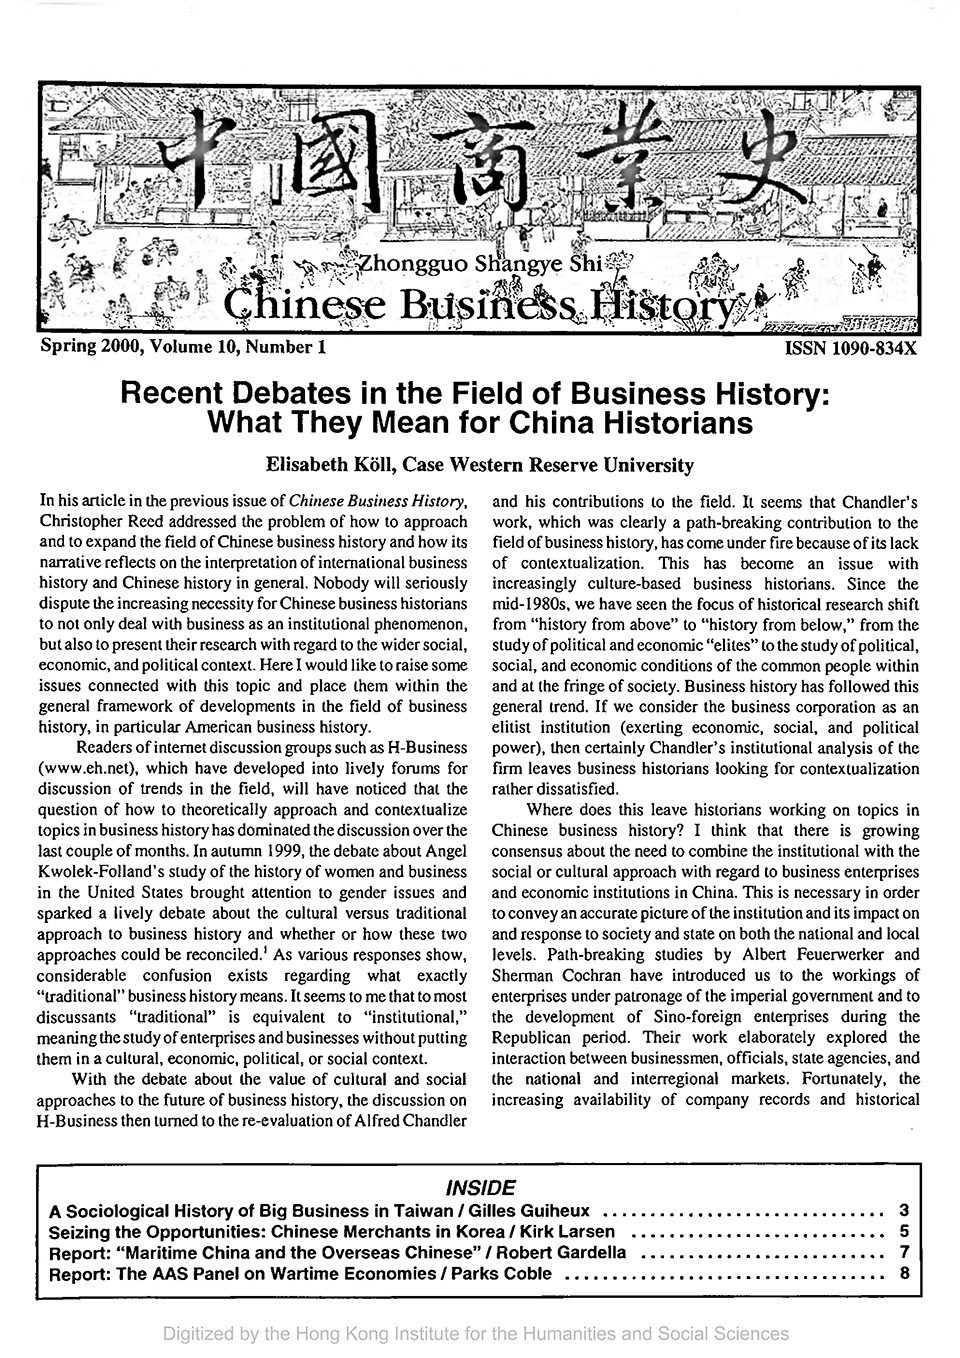 Cover of Chinese Business History Journal Volume 10, Number 1